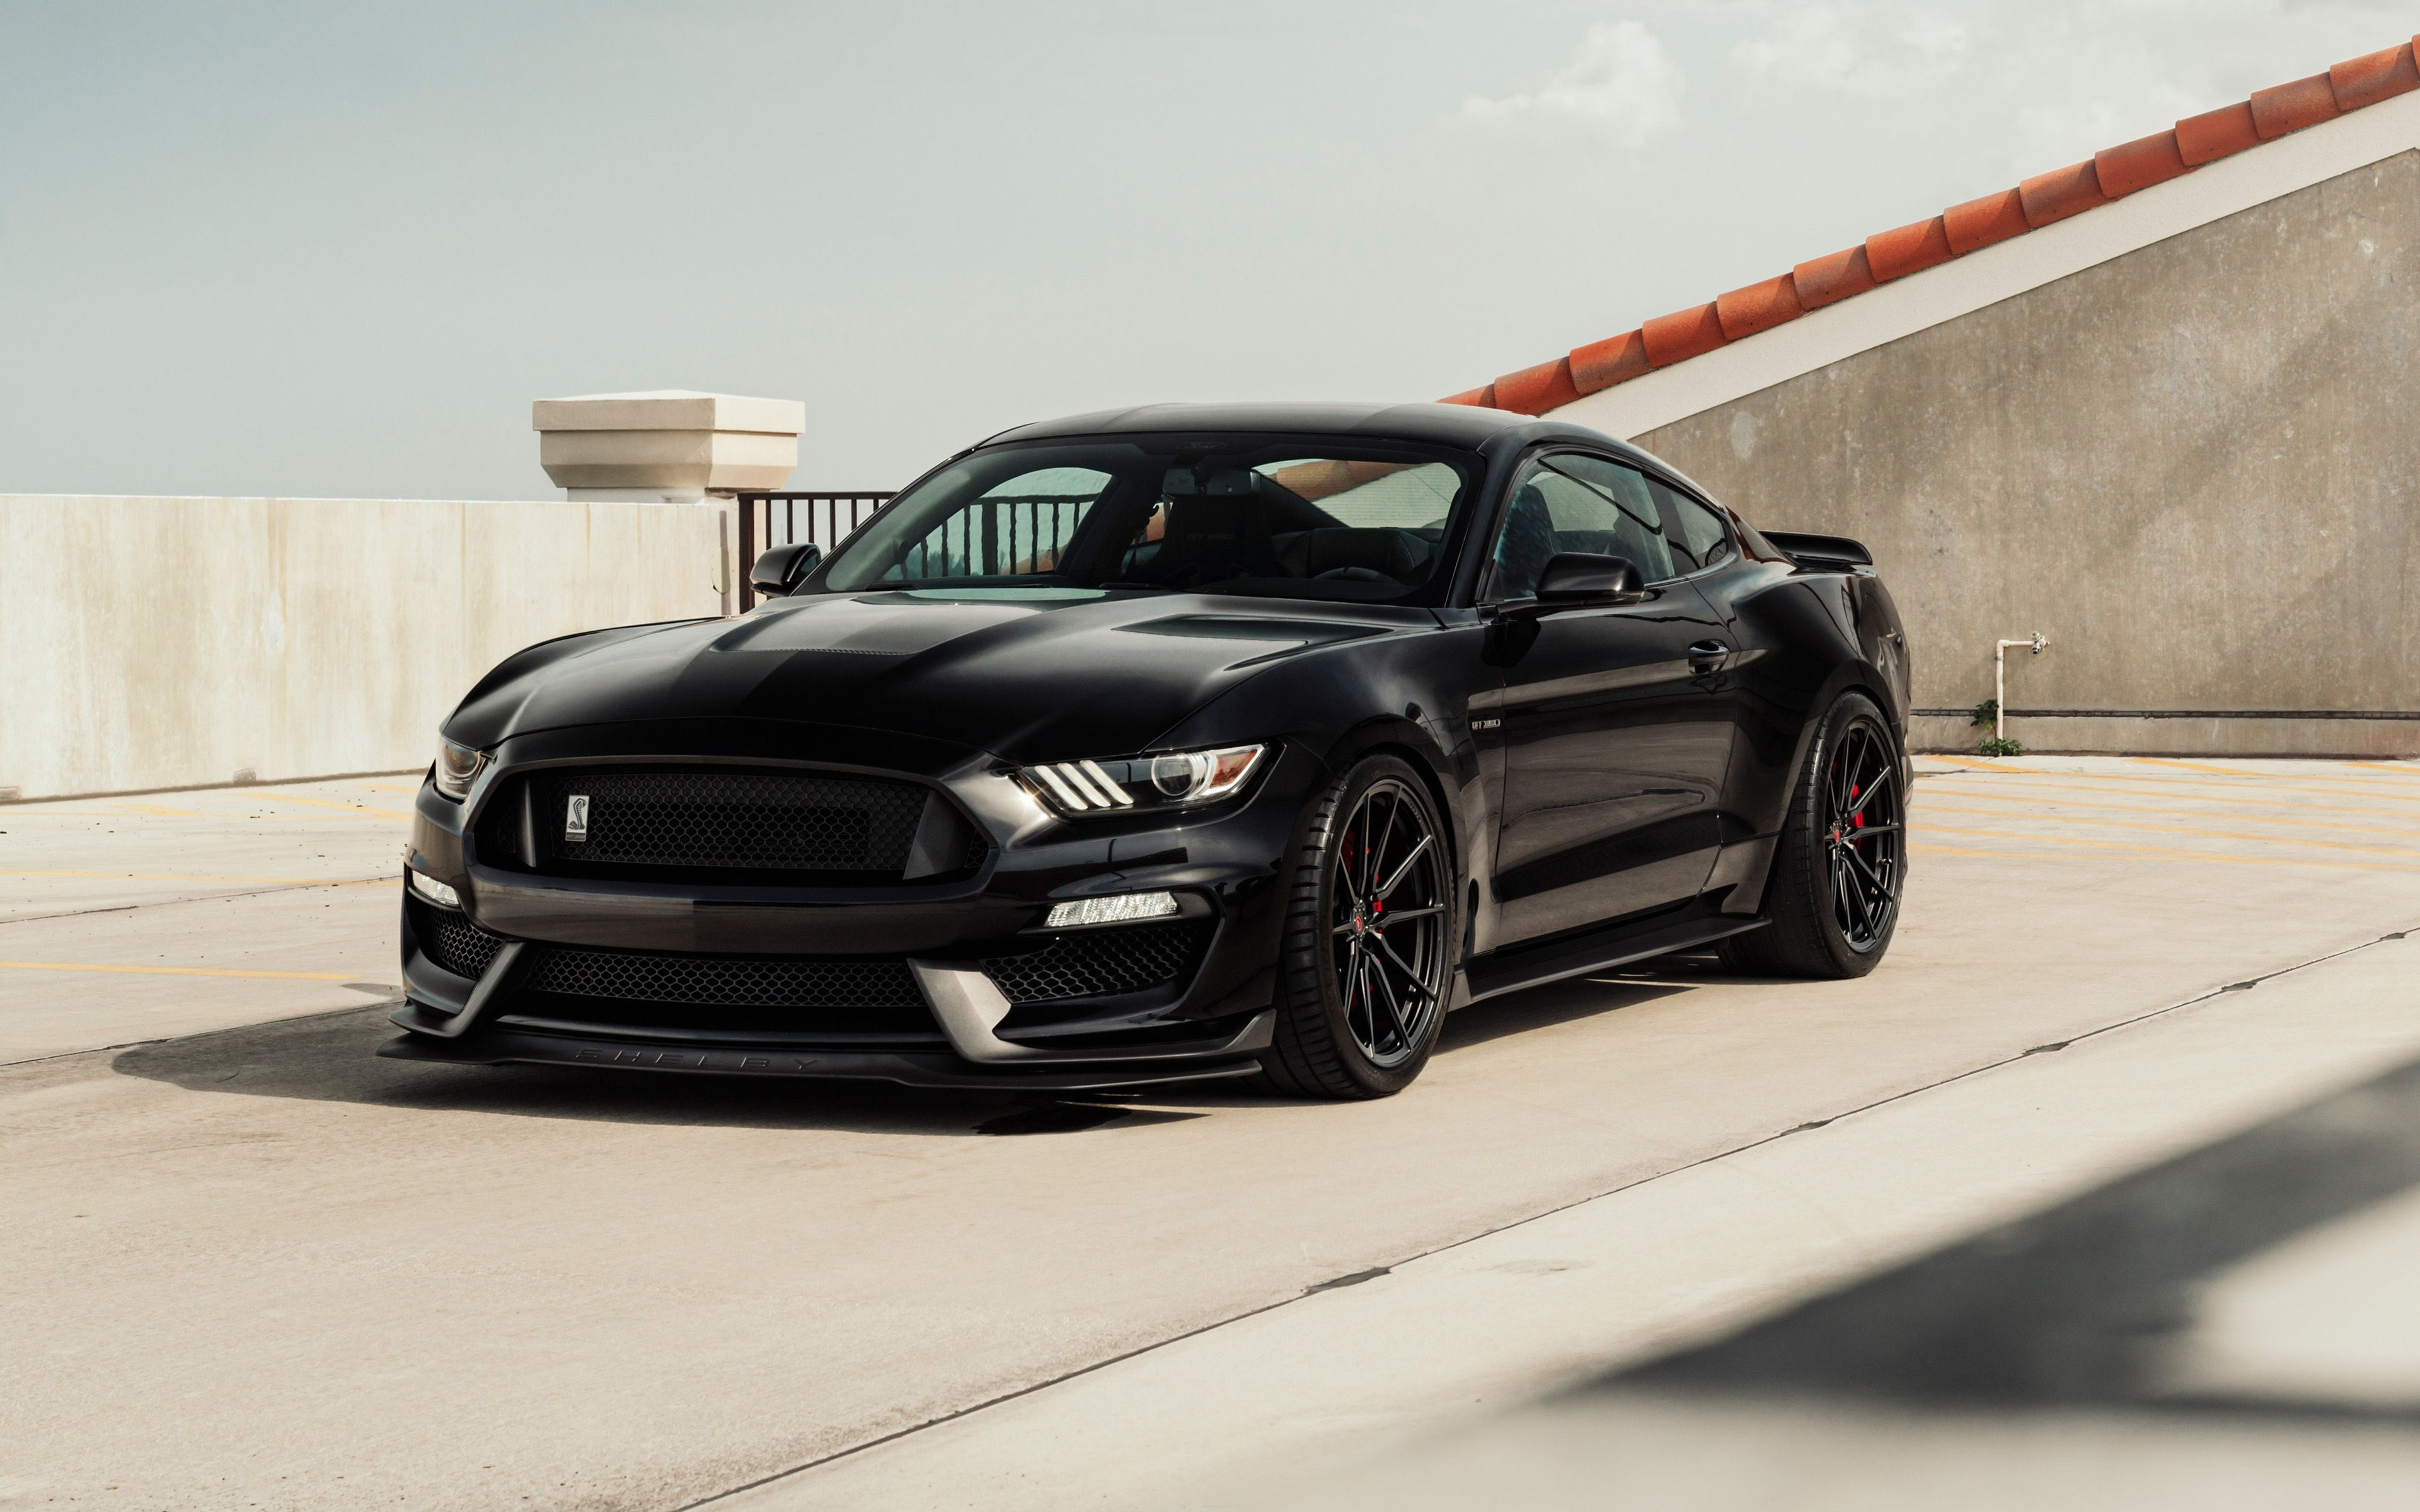 Ford mustang 2018 black sports coupe luxurious tuning mustang